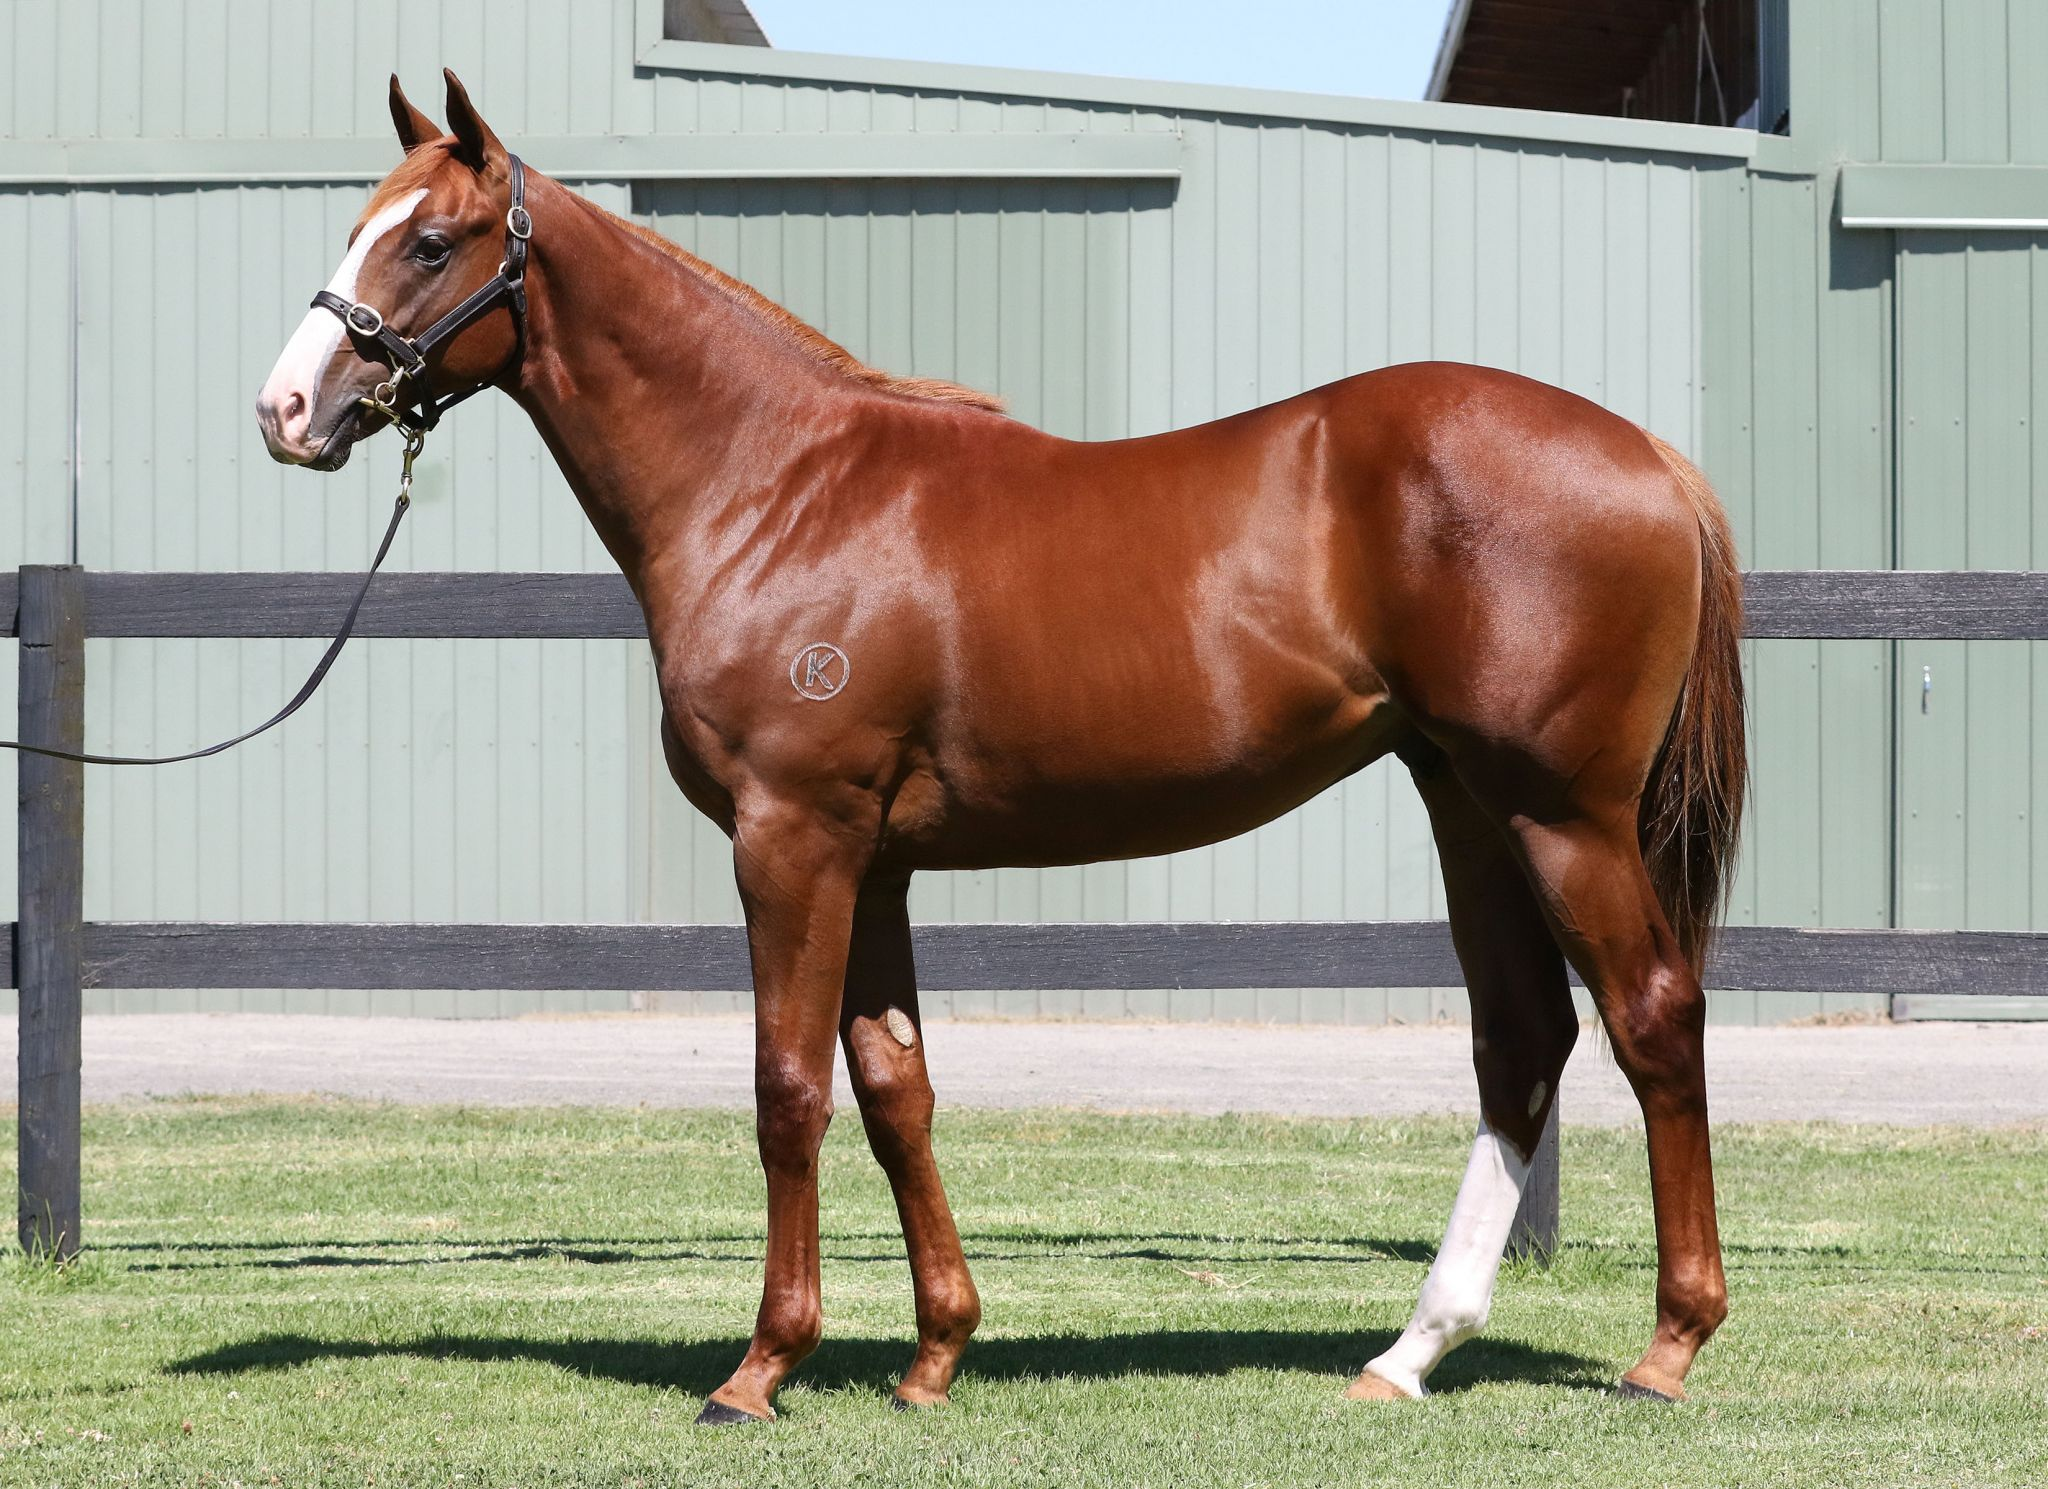 Polanco at 2017 Classic Yearling Sale